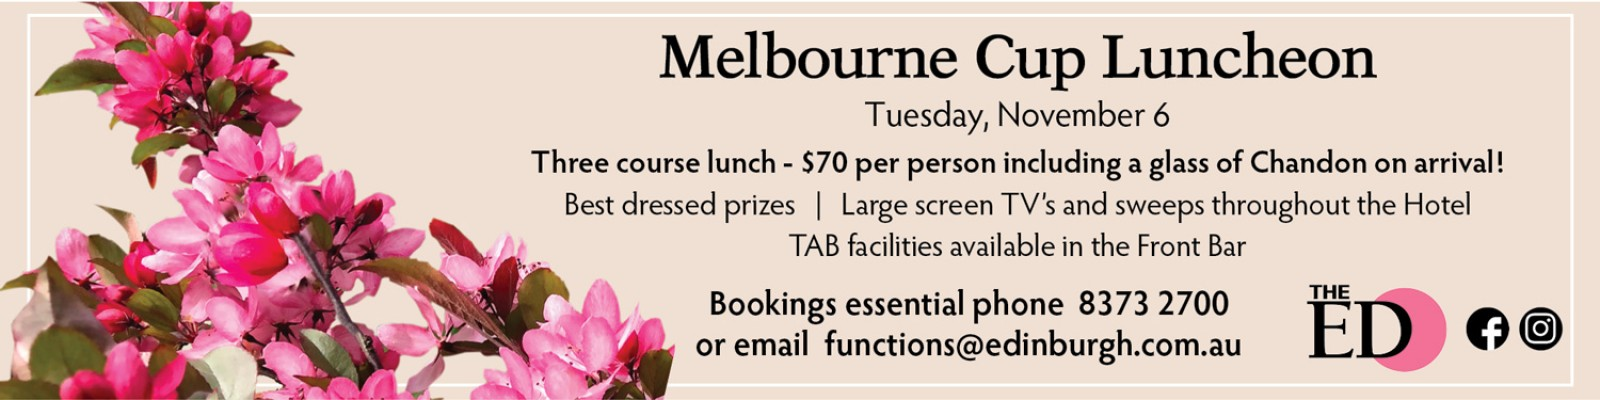 Melb Cup banner ad20